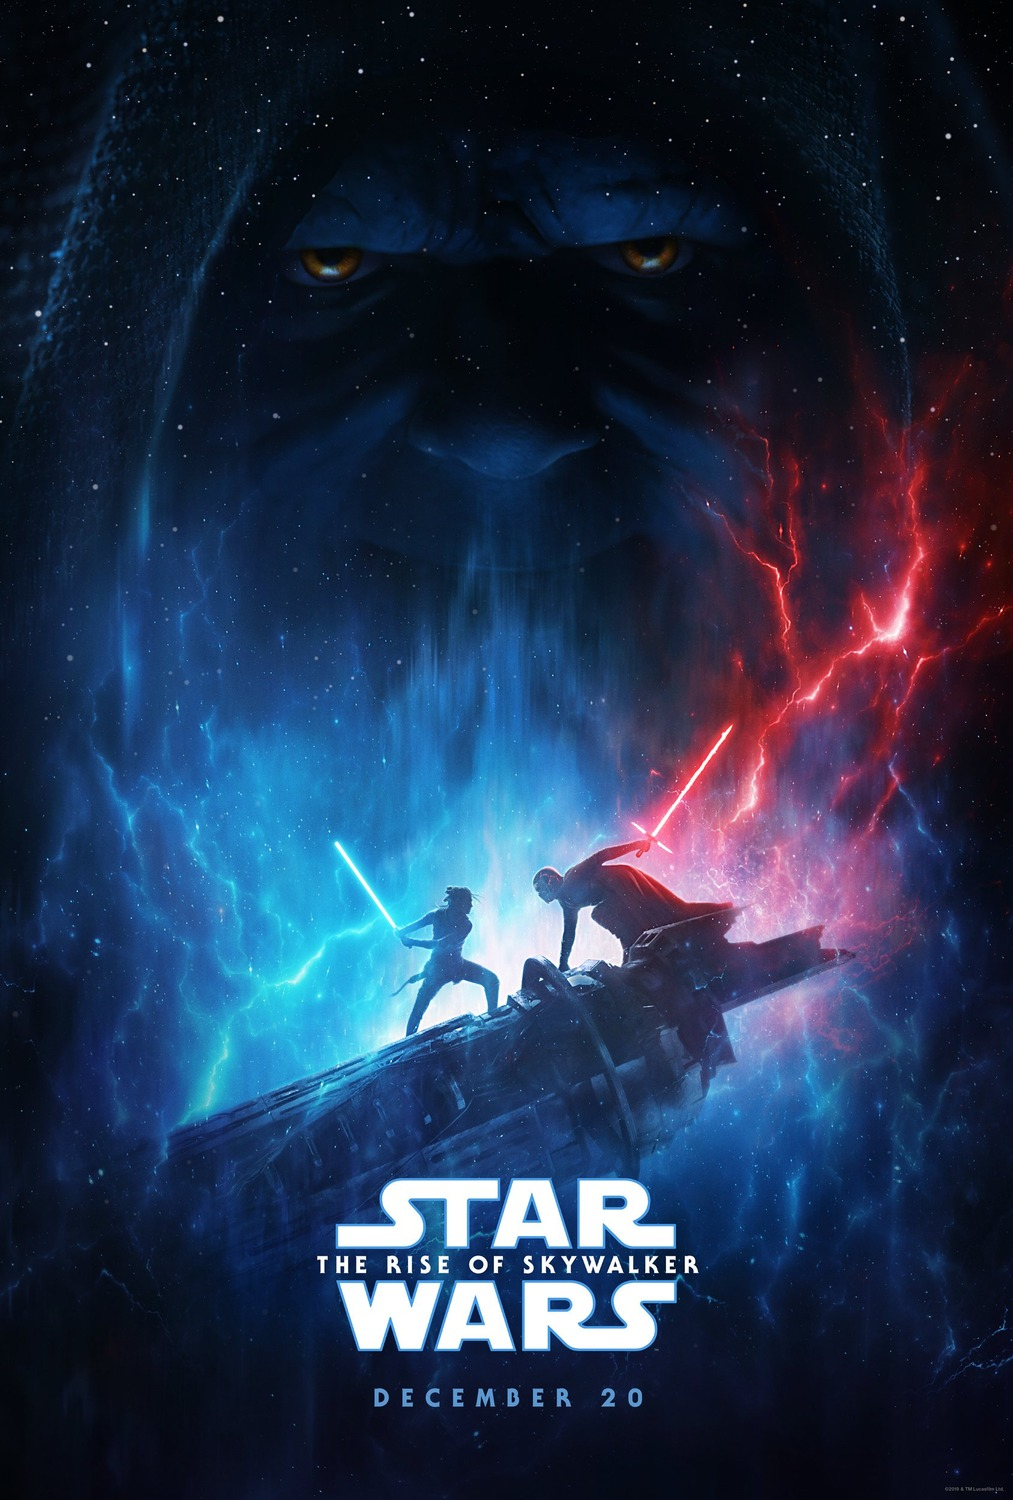 Extra Large Movie Poster Image for Star Wars: The Rise of Skywalker (#2 of 2)